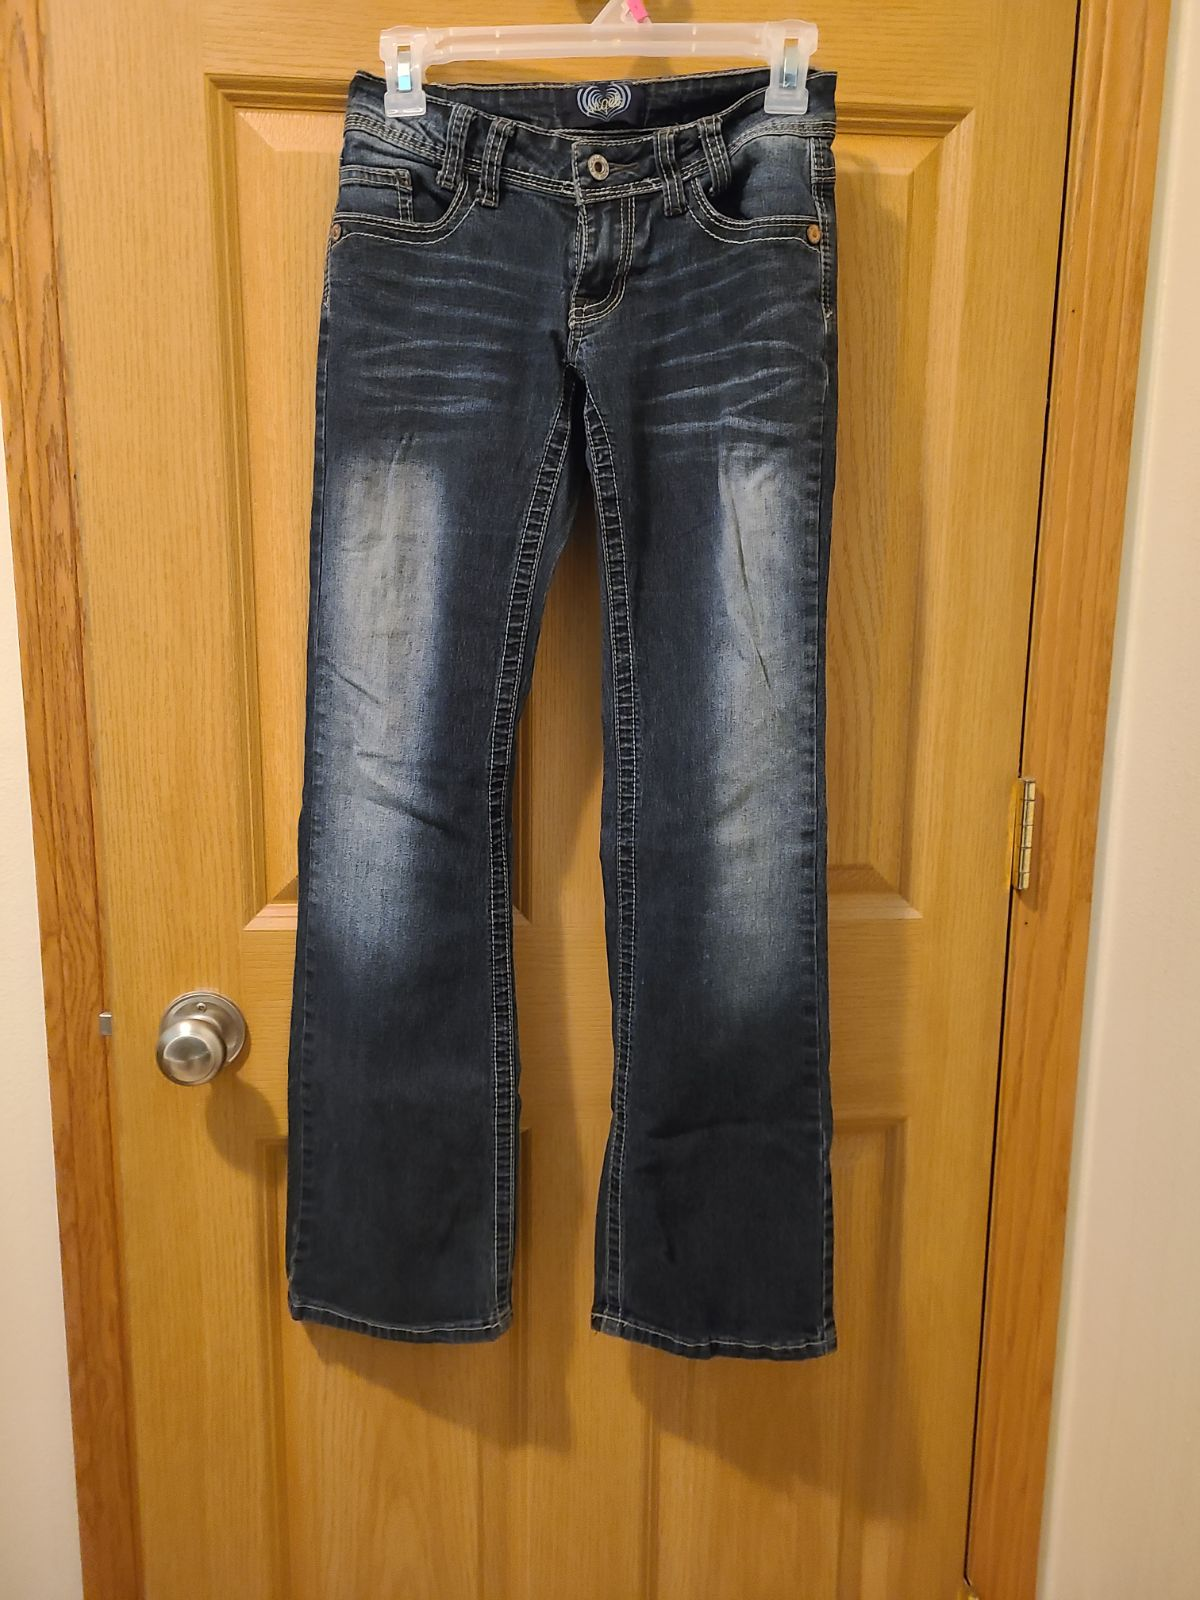 ANGELS JEANS Size 1